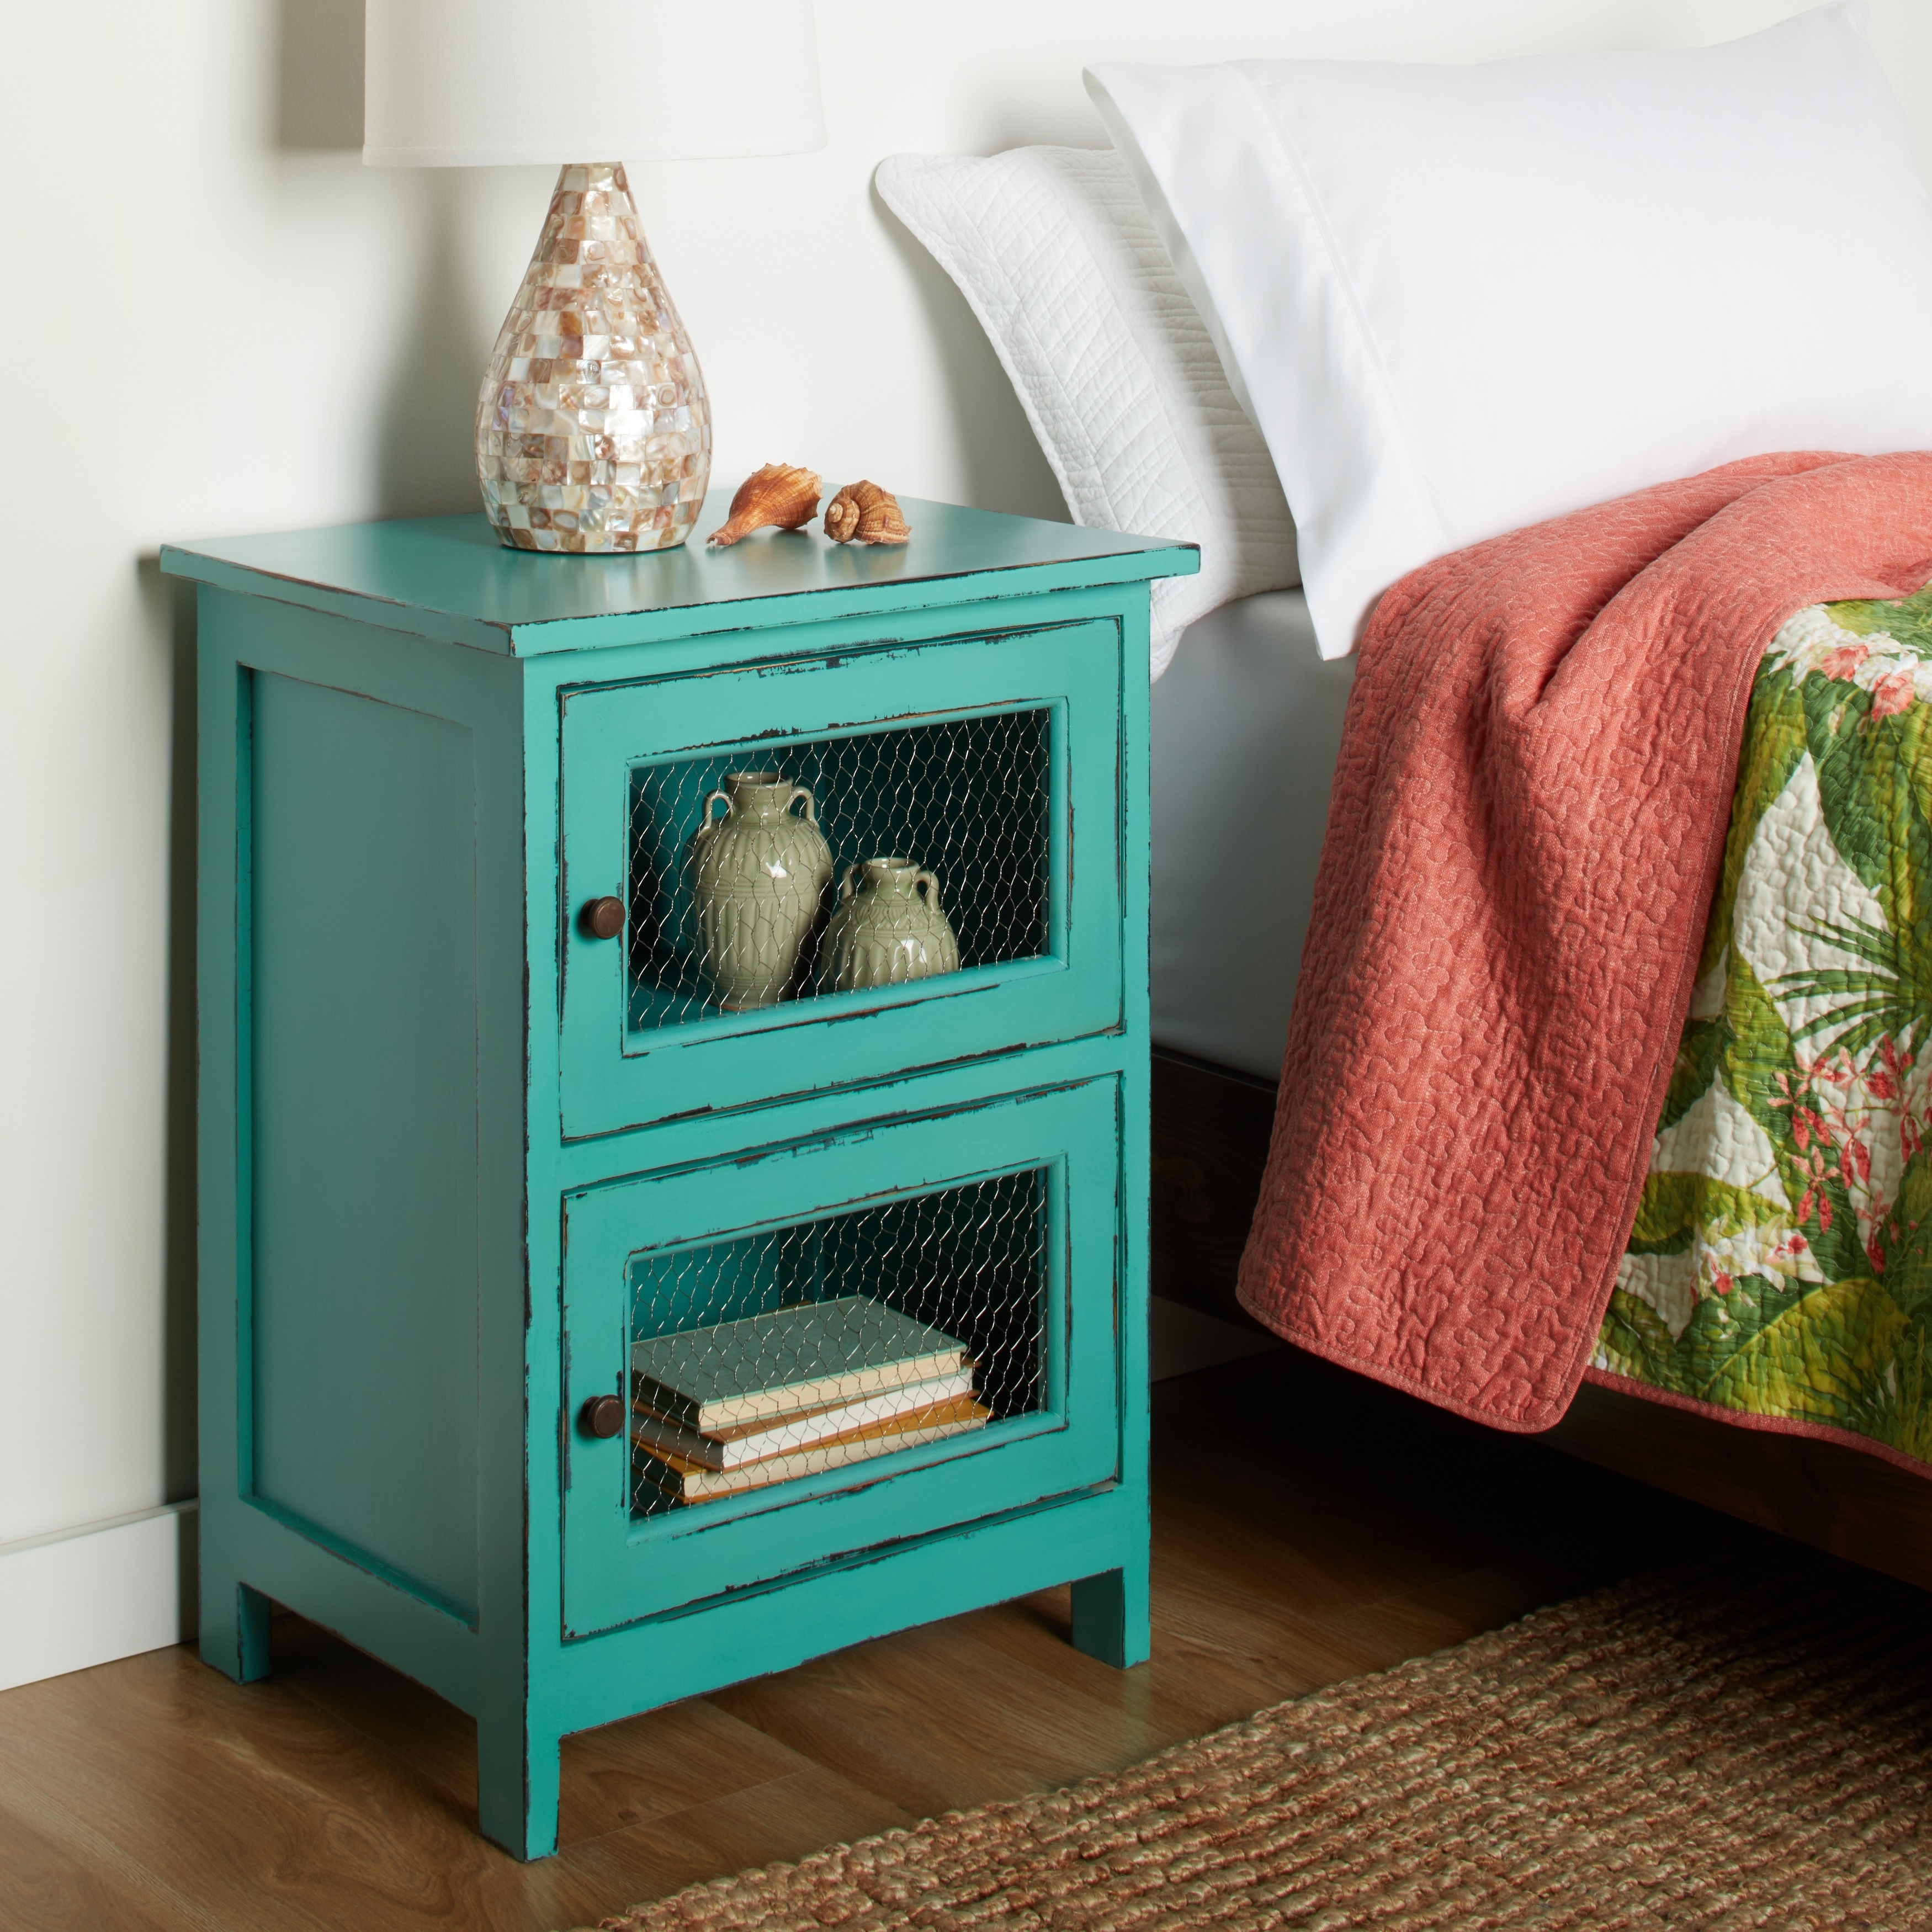 kijang turquoise night stand free shipping today teal colored end tables red outdoor side table white wicker bedside brown coffee marble top kitchen decor steamer diy patio accent